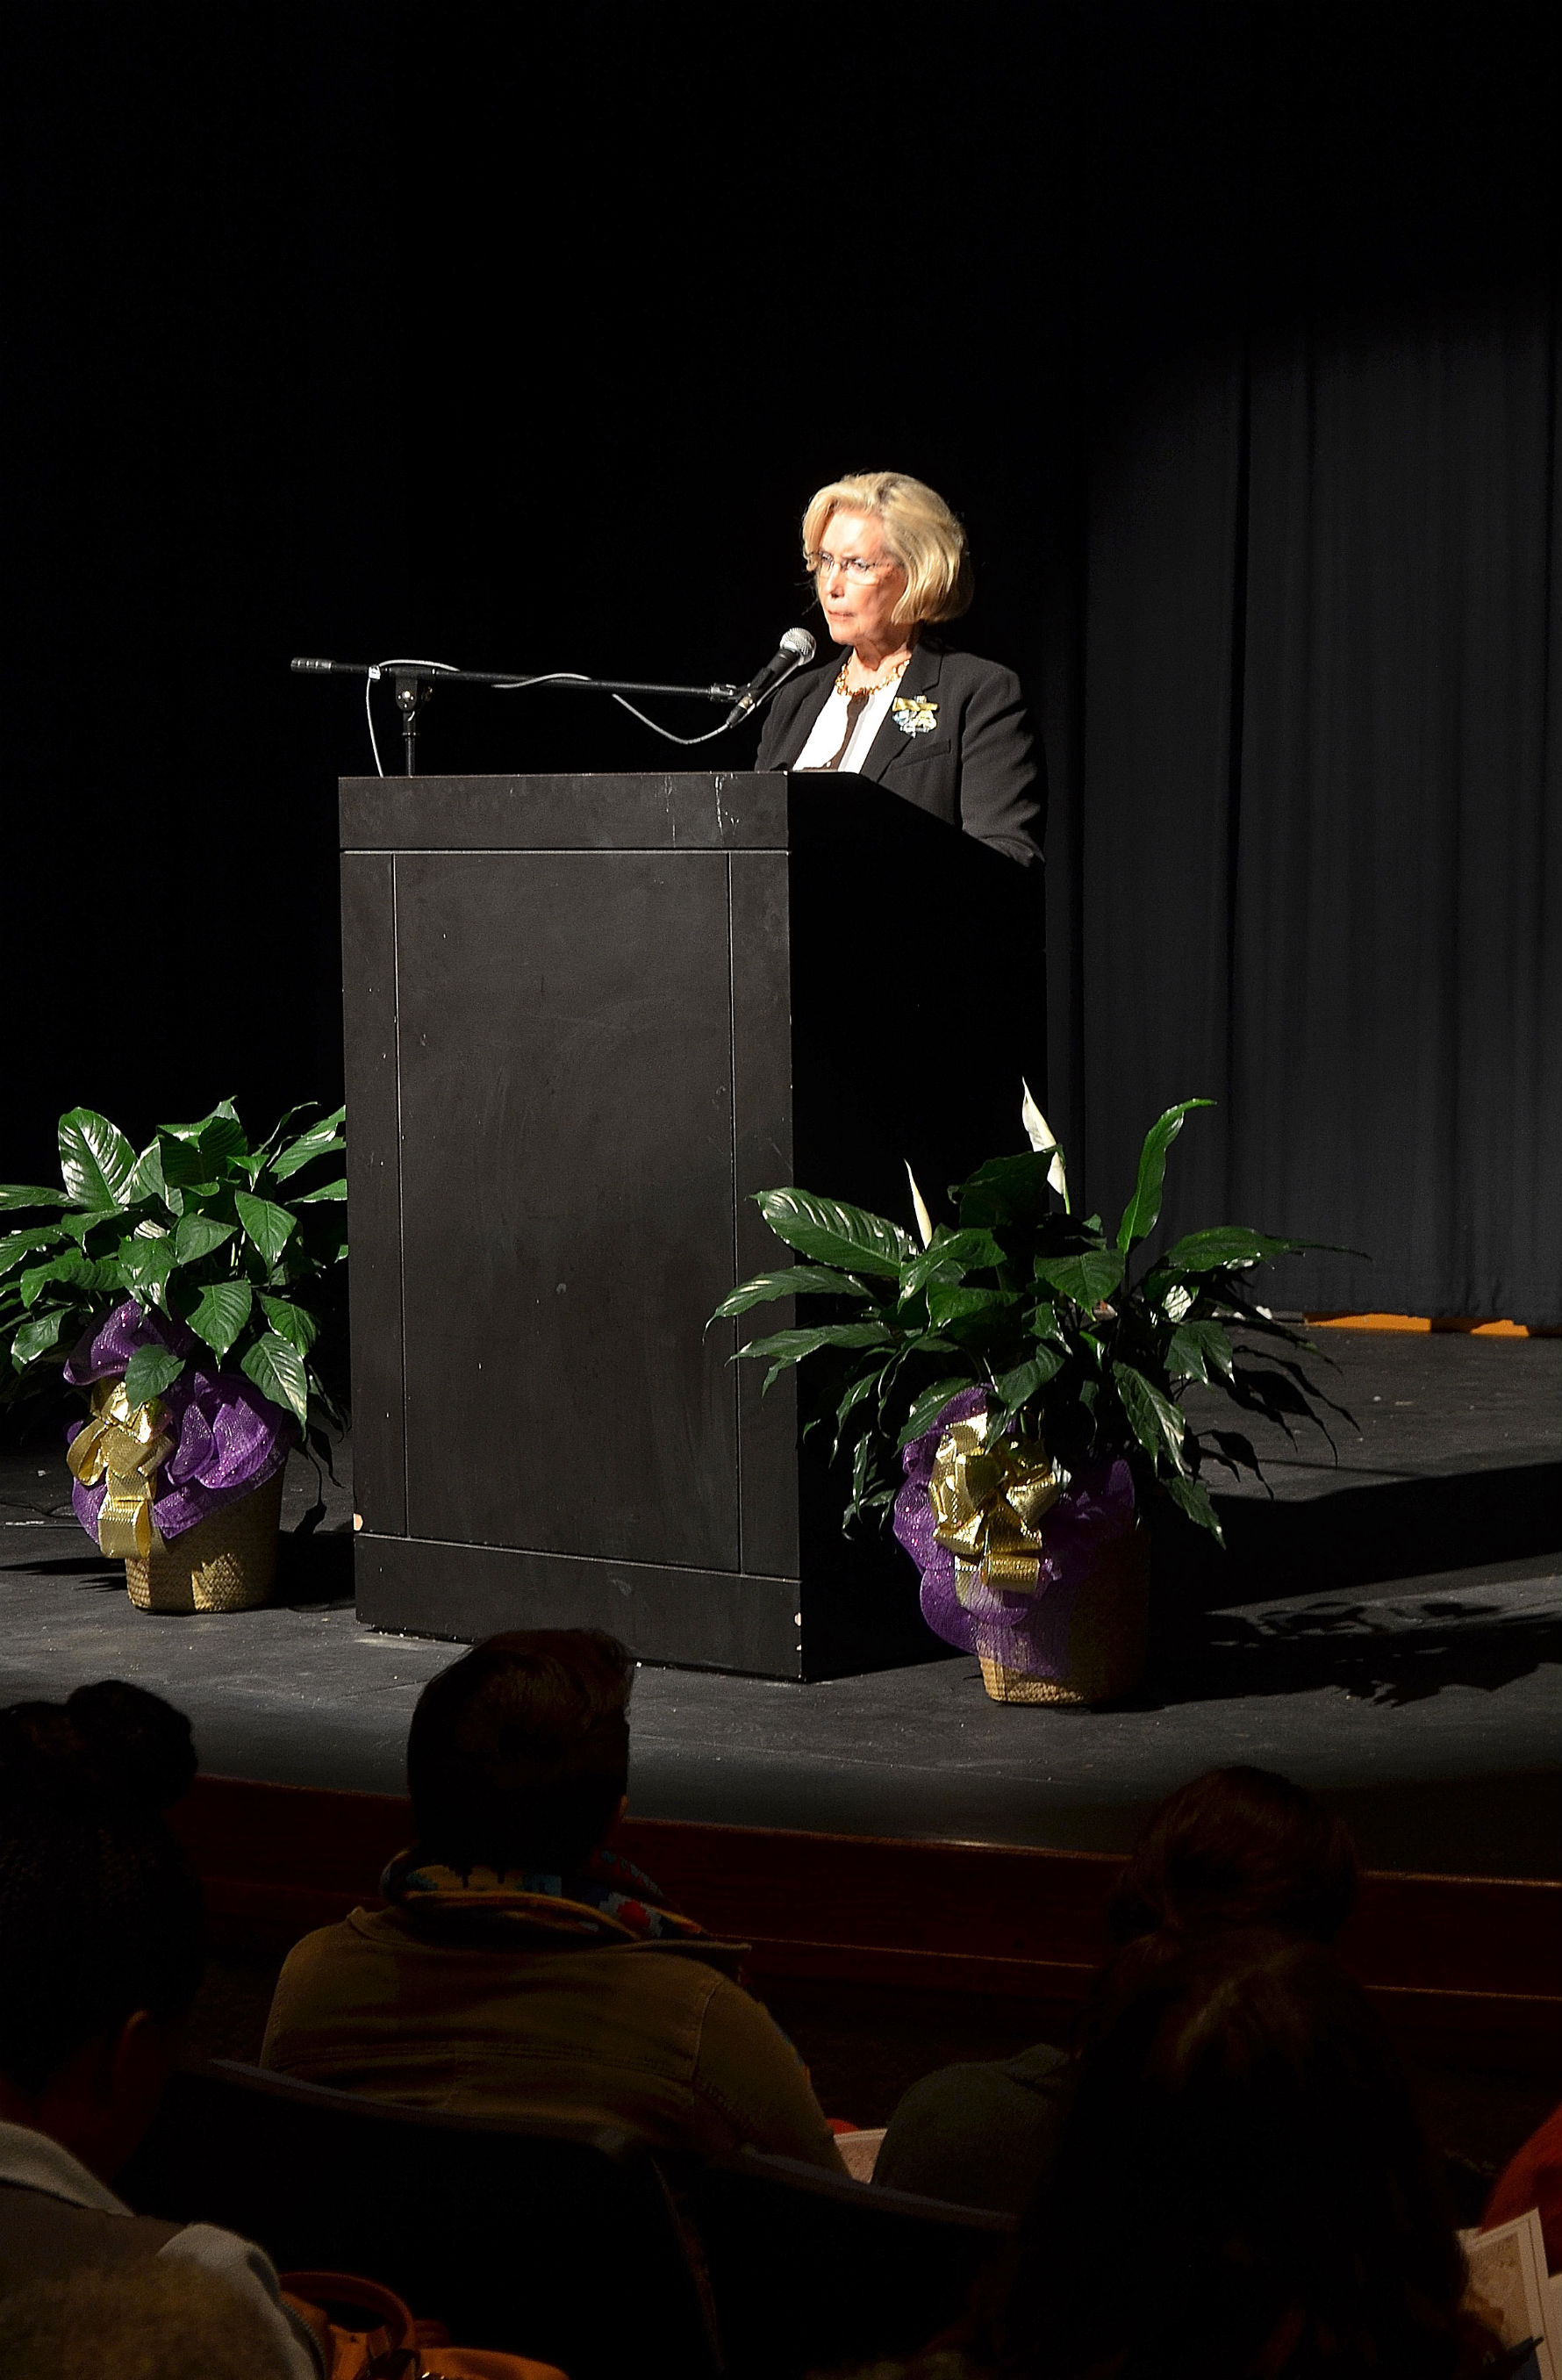 Lecture series brings Lilly Ledbetter to Montevallo